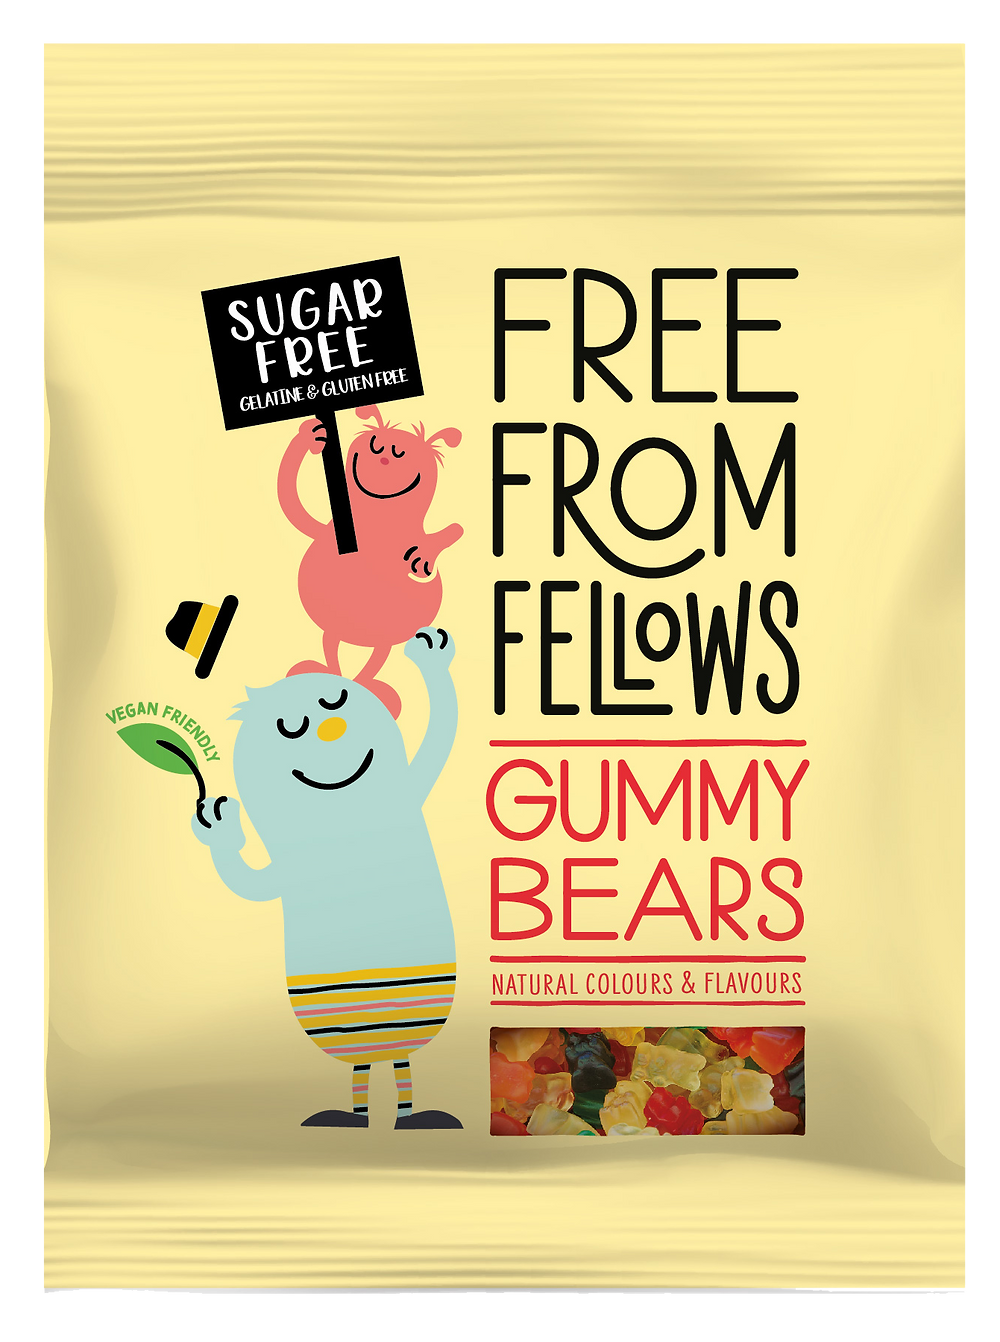 Free From Fellows Gelatine Free Gummy Bears